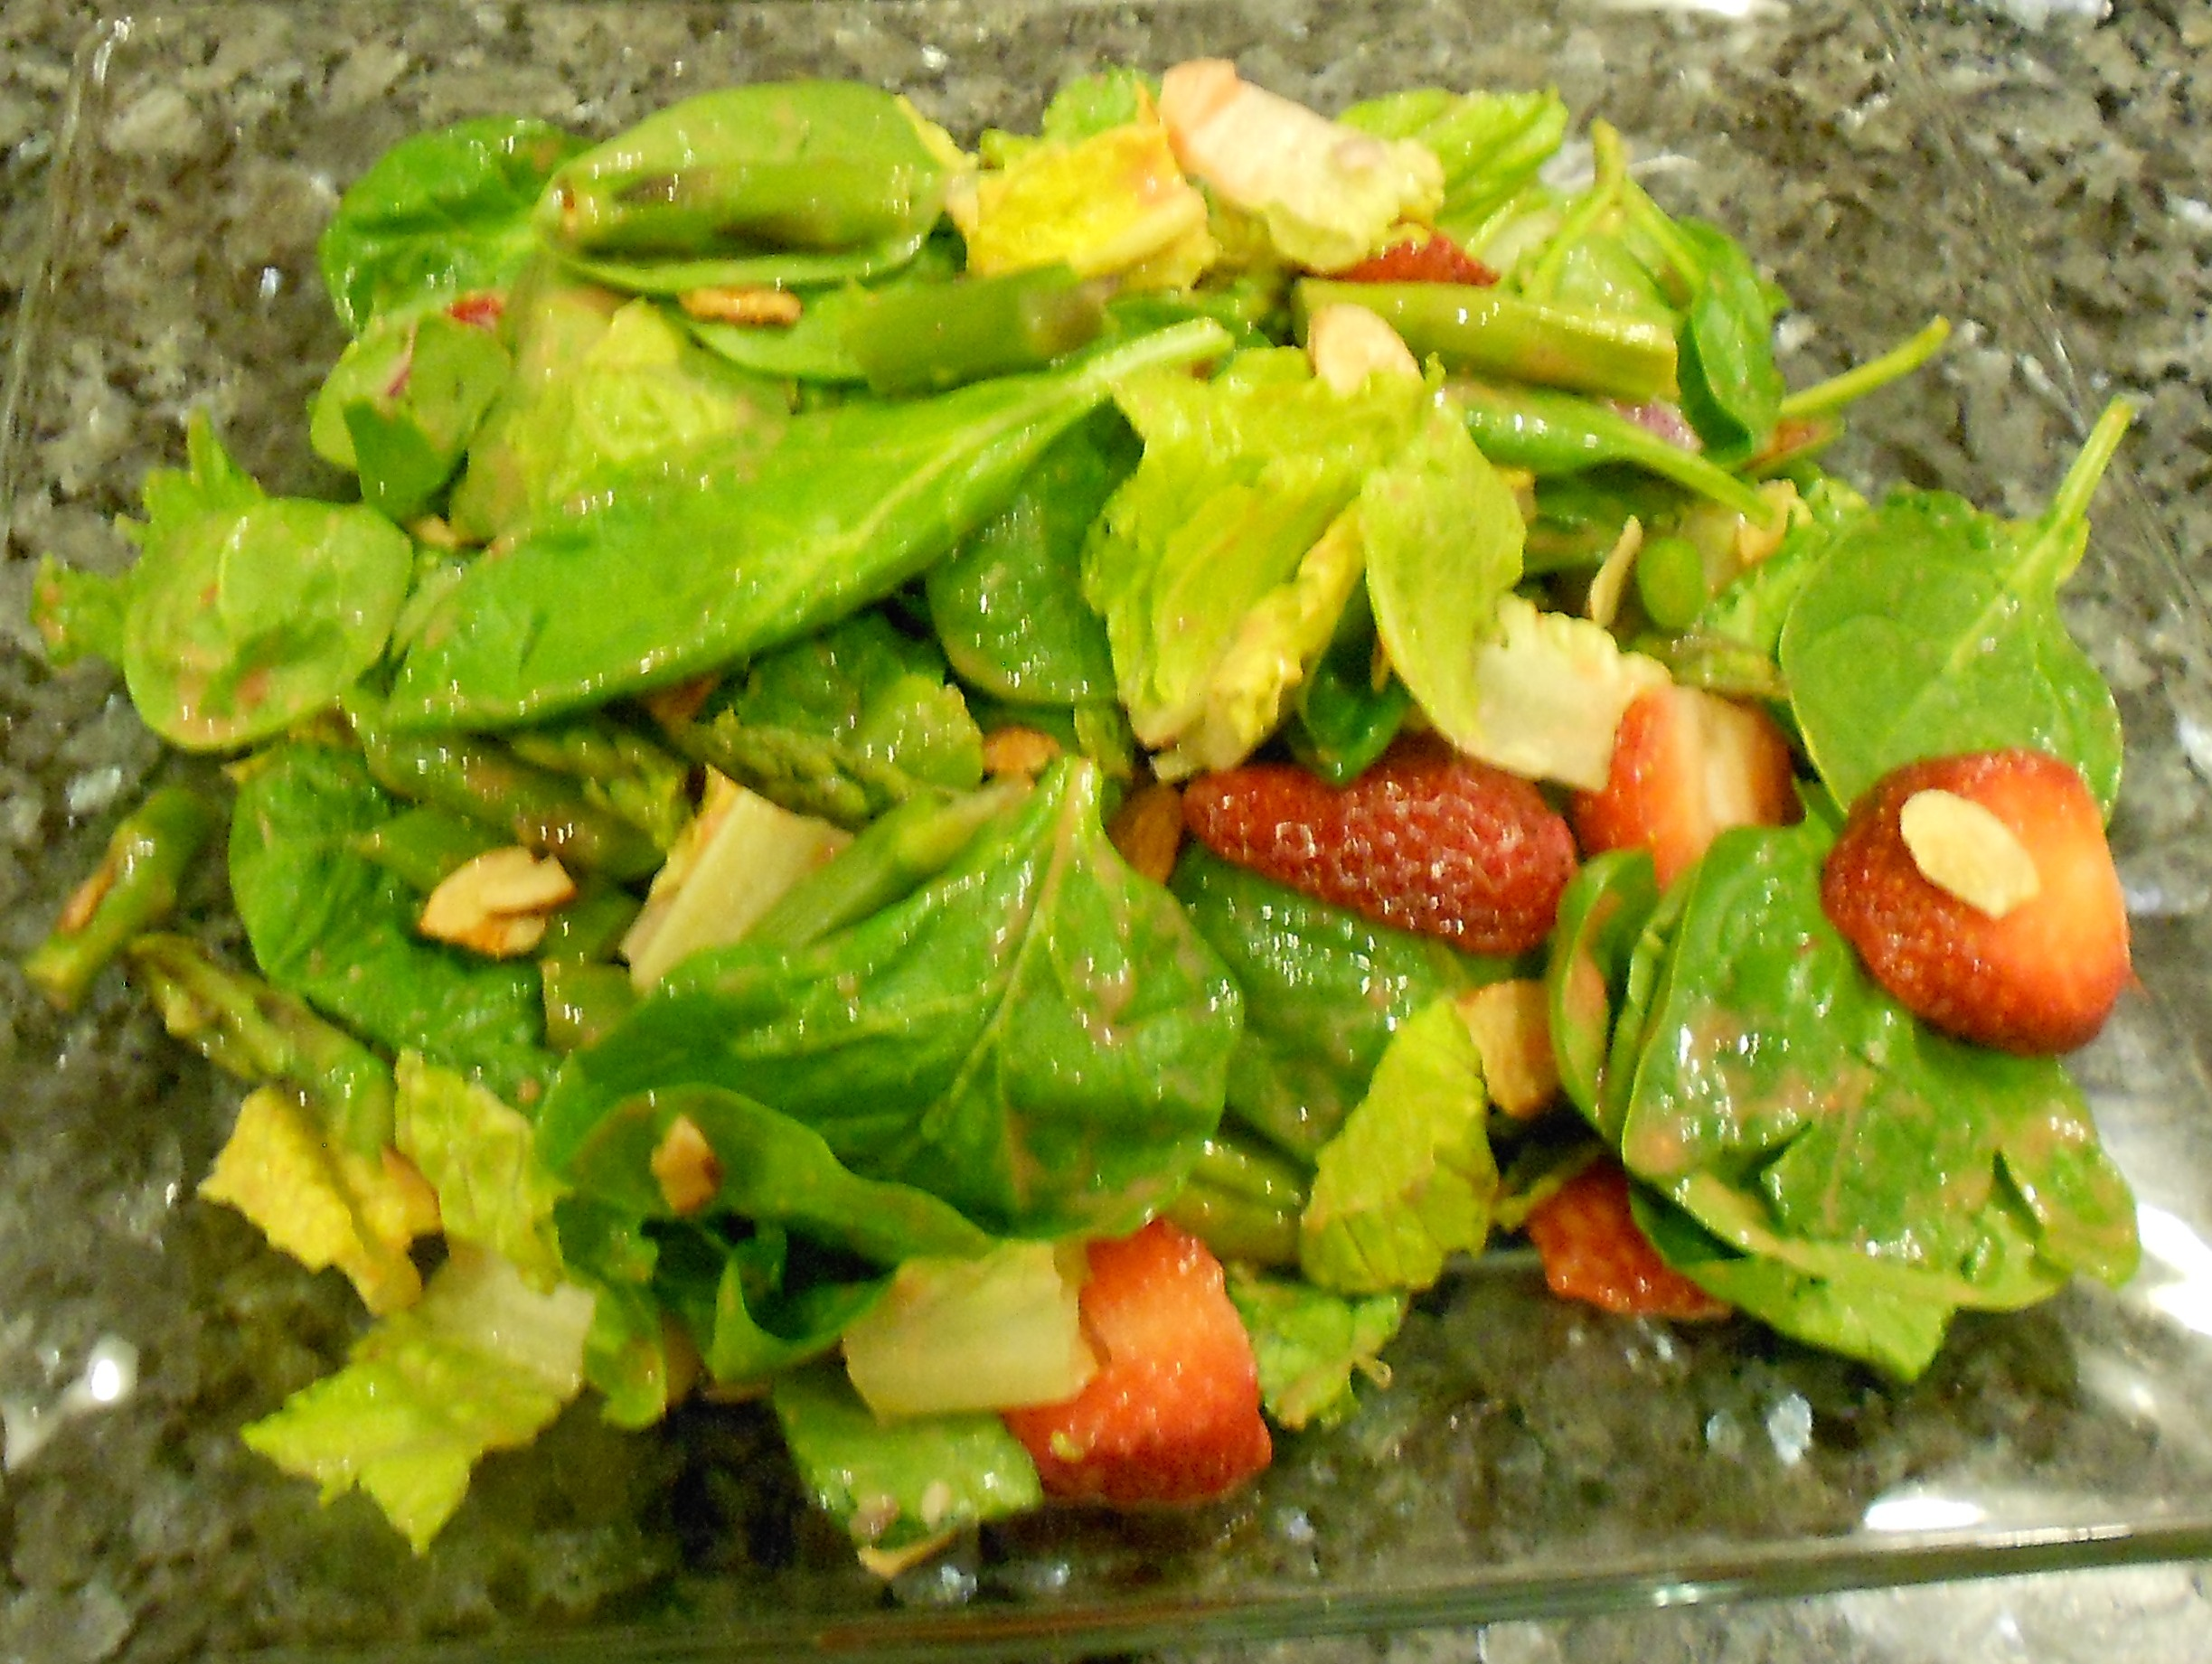 Strawberry & Asparagus Salad is very fresh tasting not only due to the ...